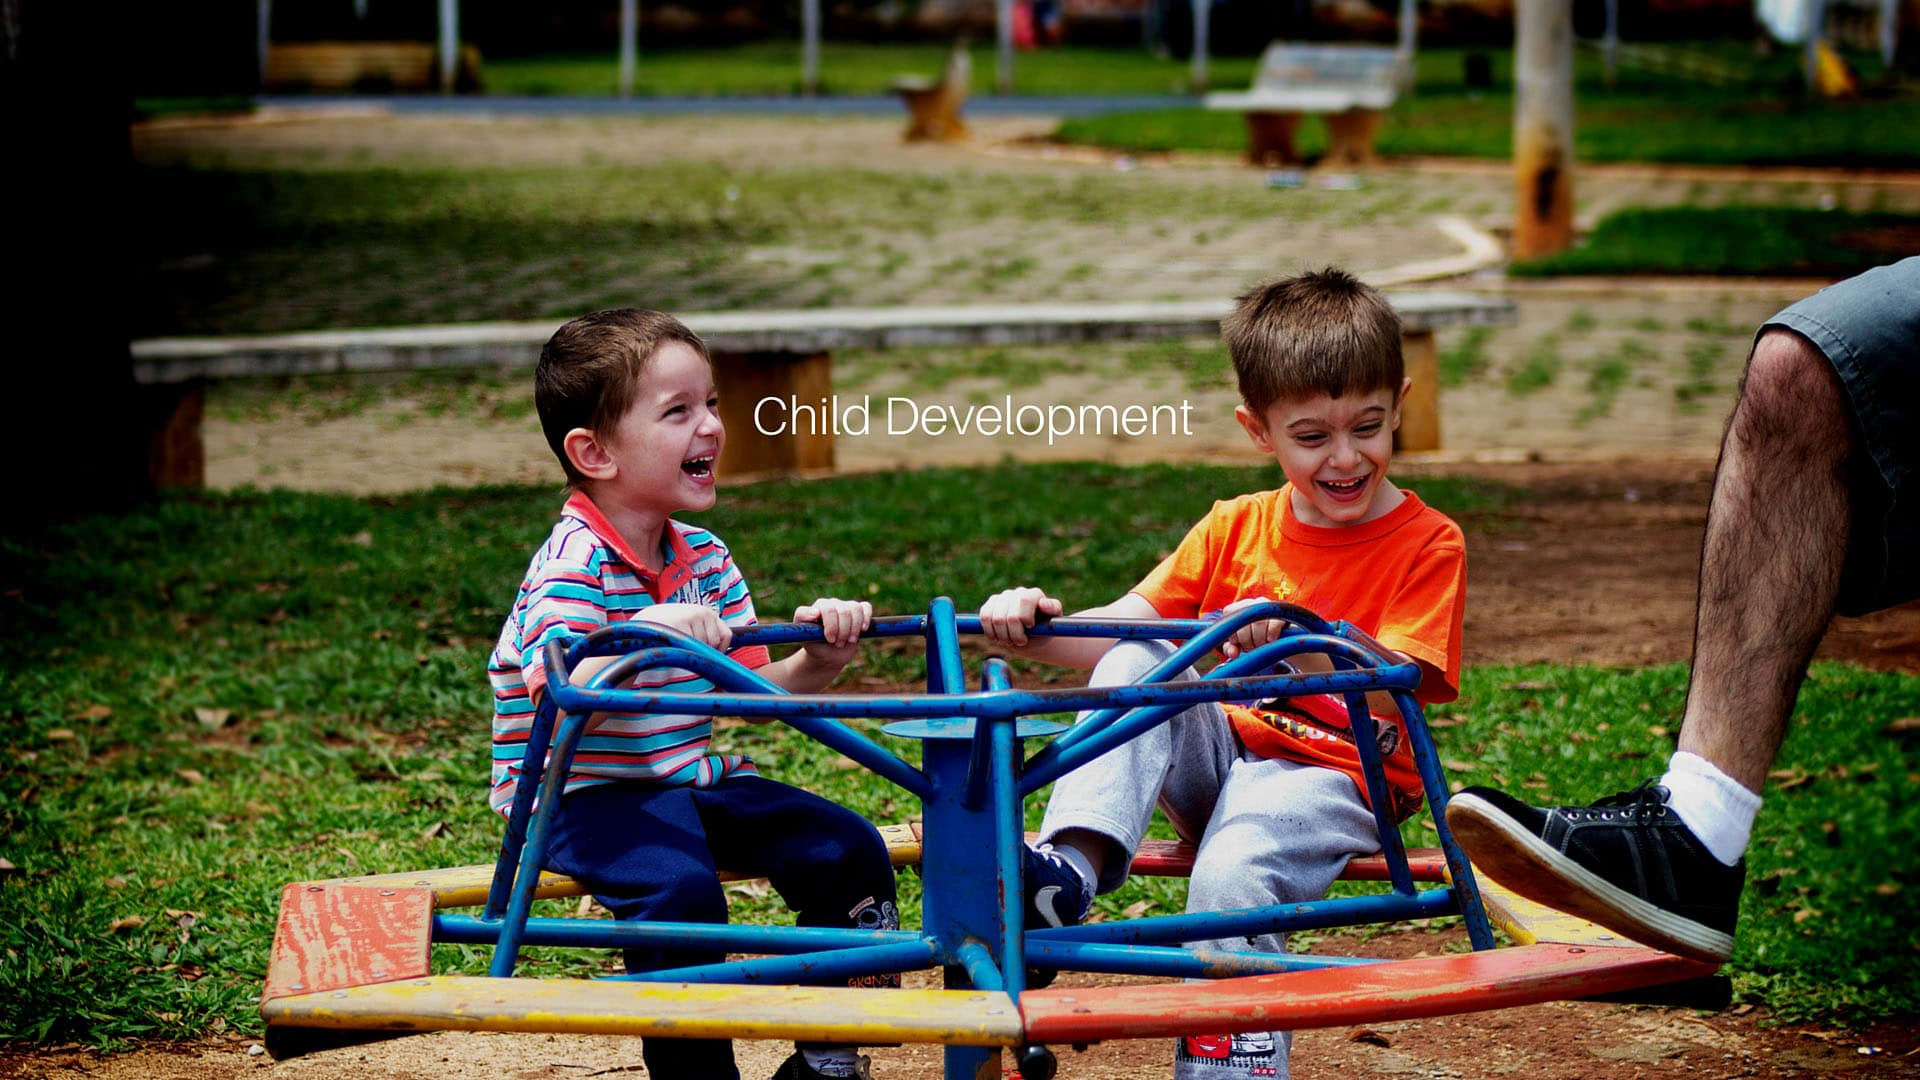 How playground equipment helps child development